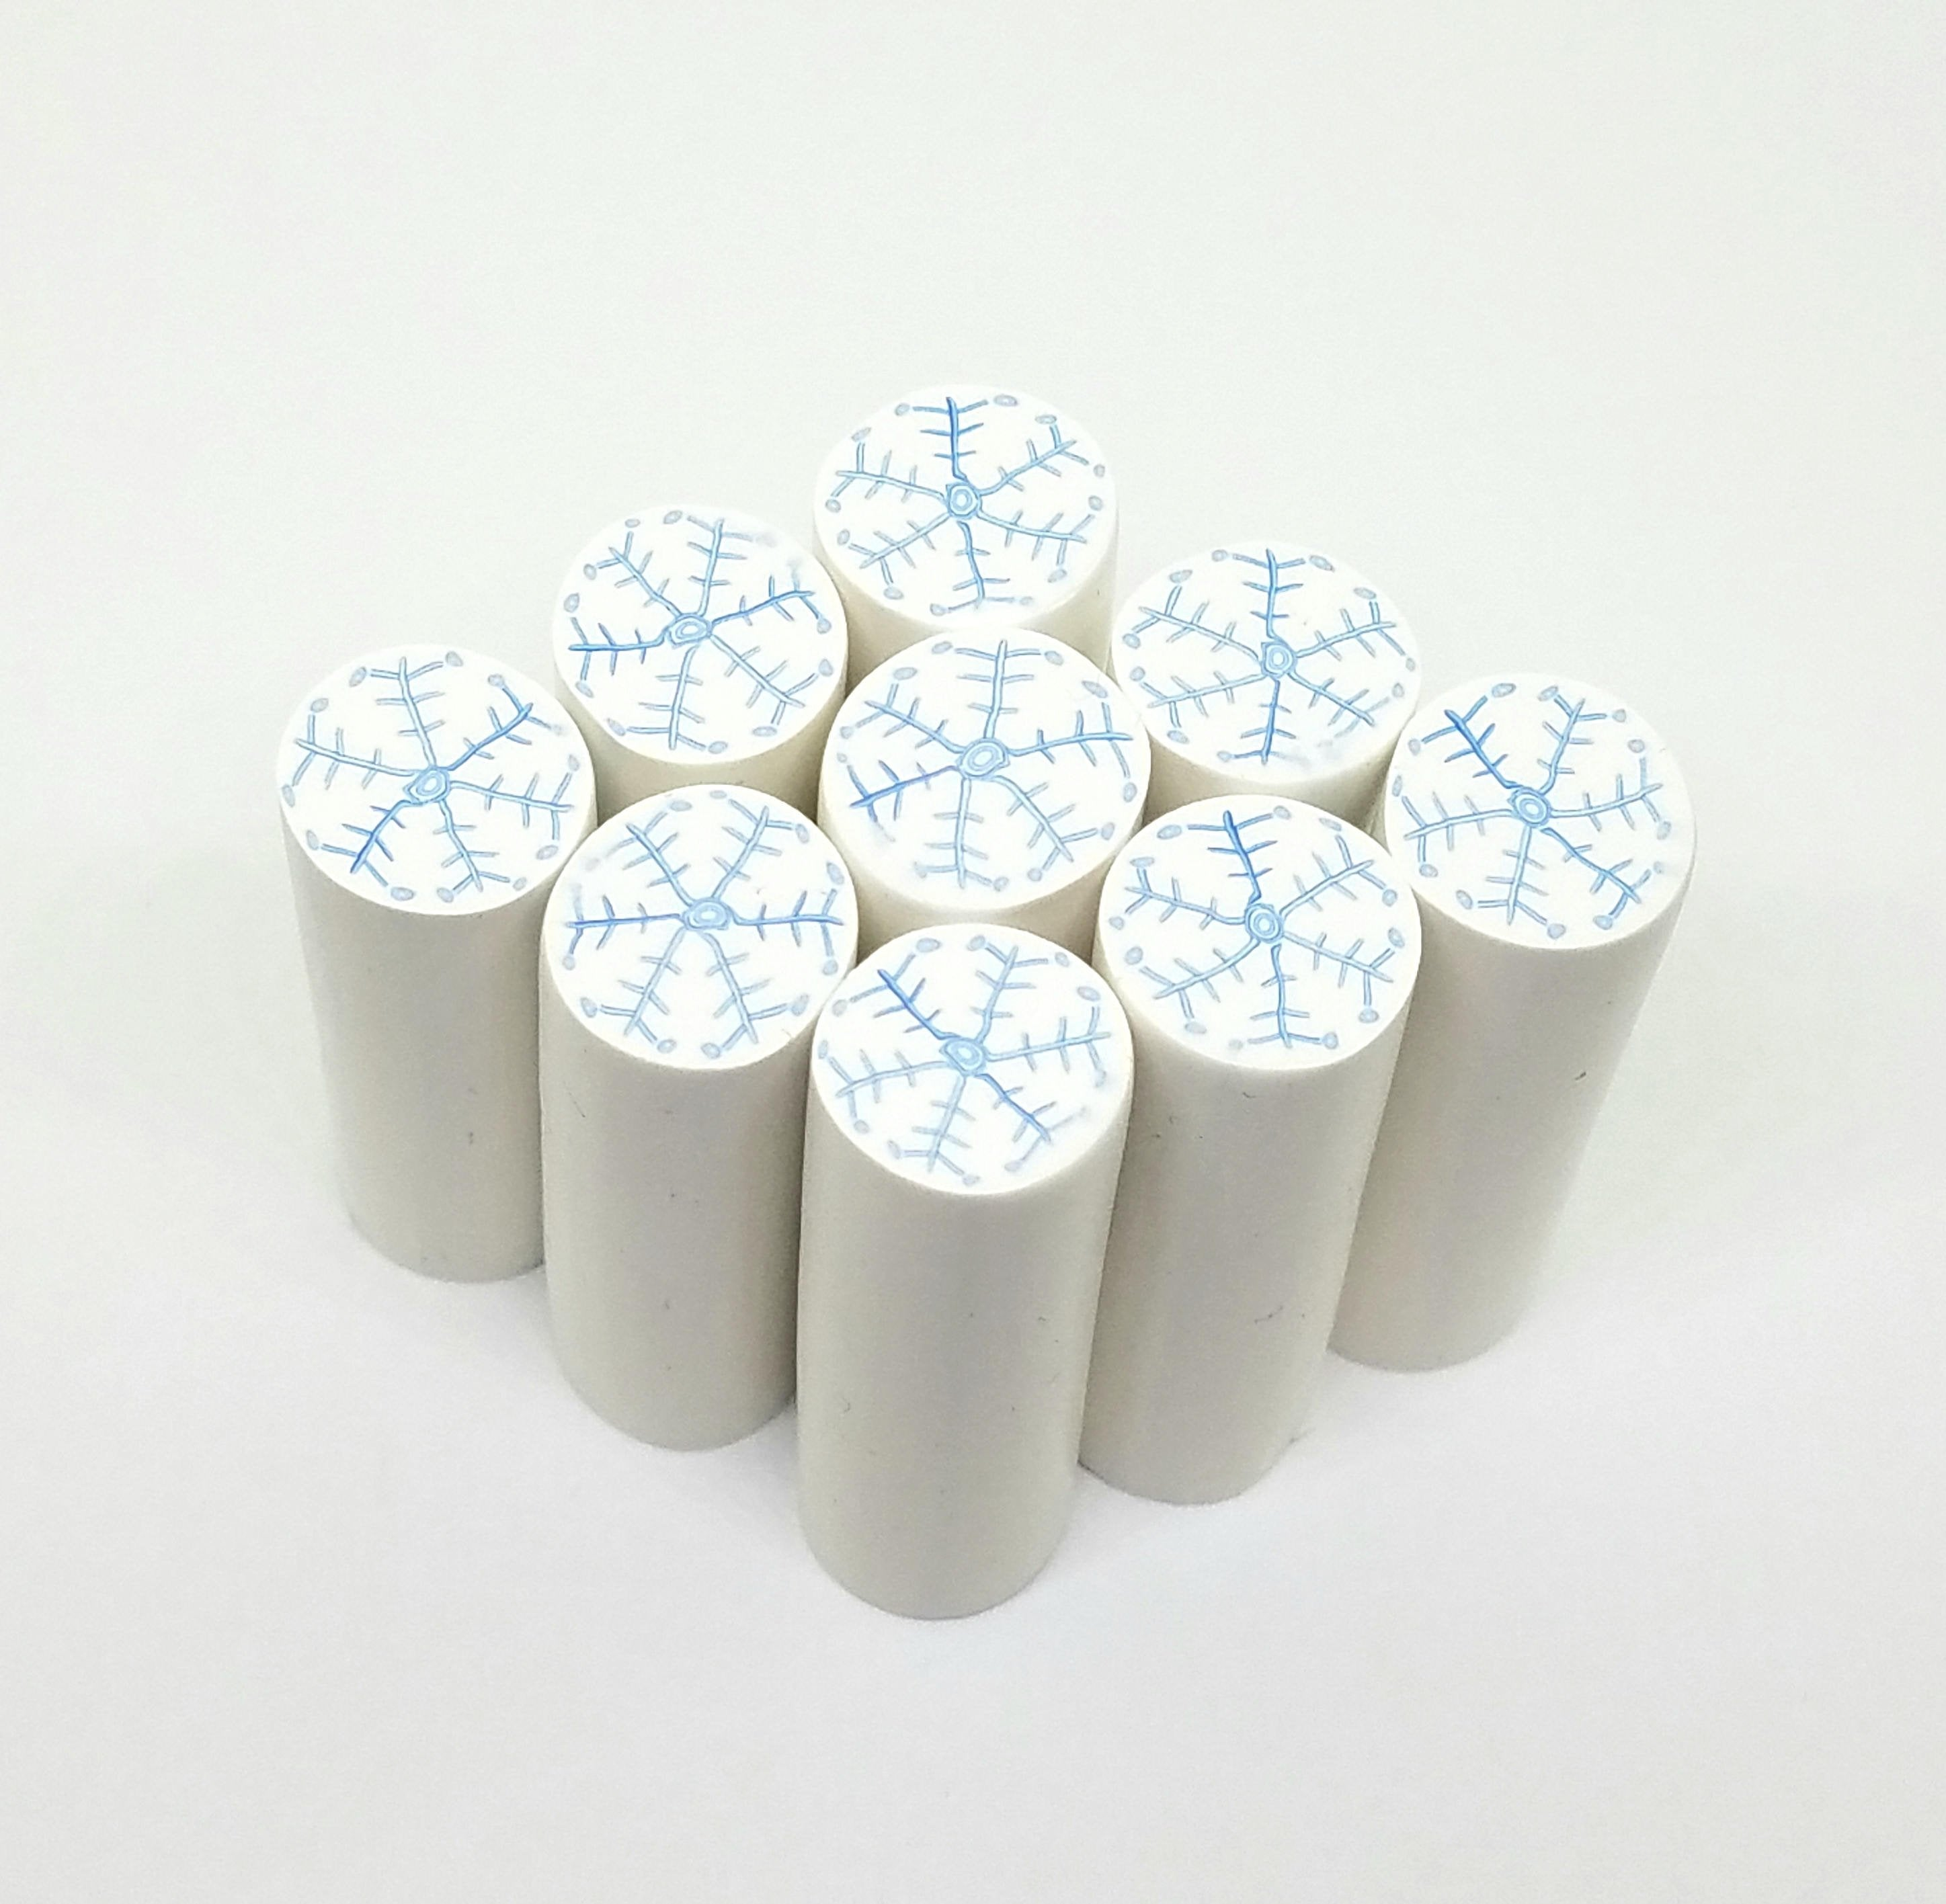 Snowflake Cane, Raw Clay Canes. White Background (not translucent)